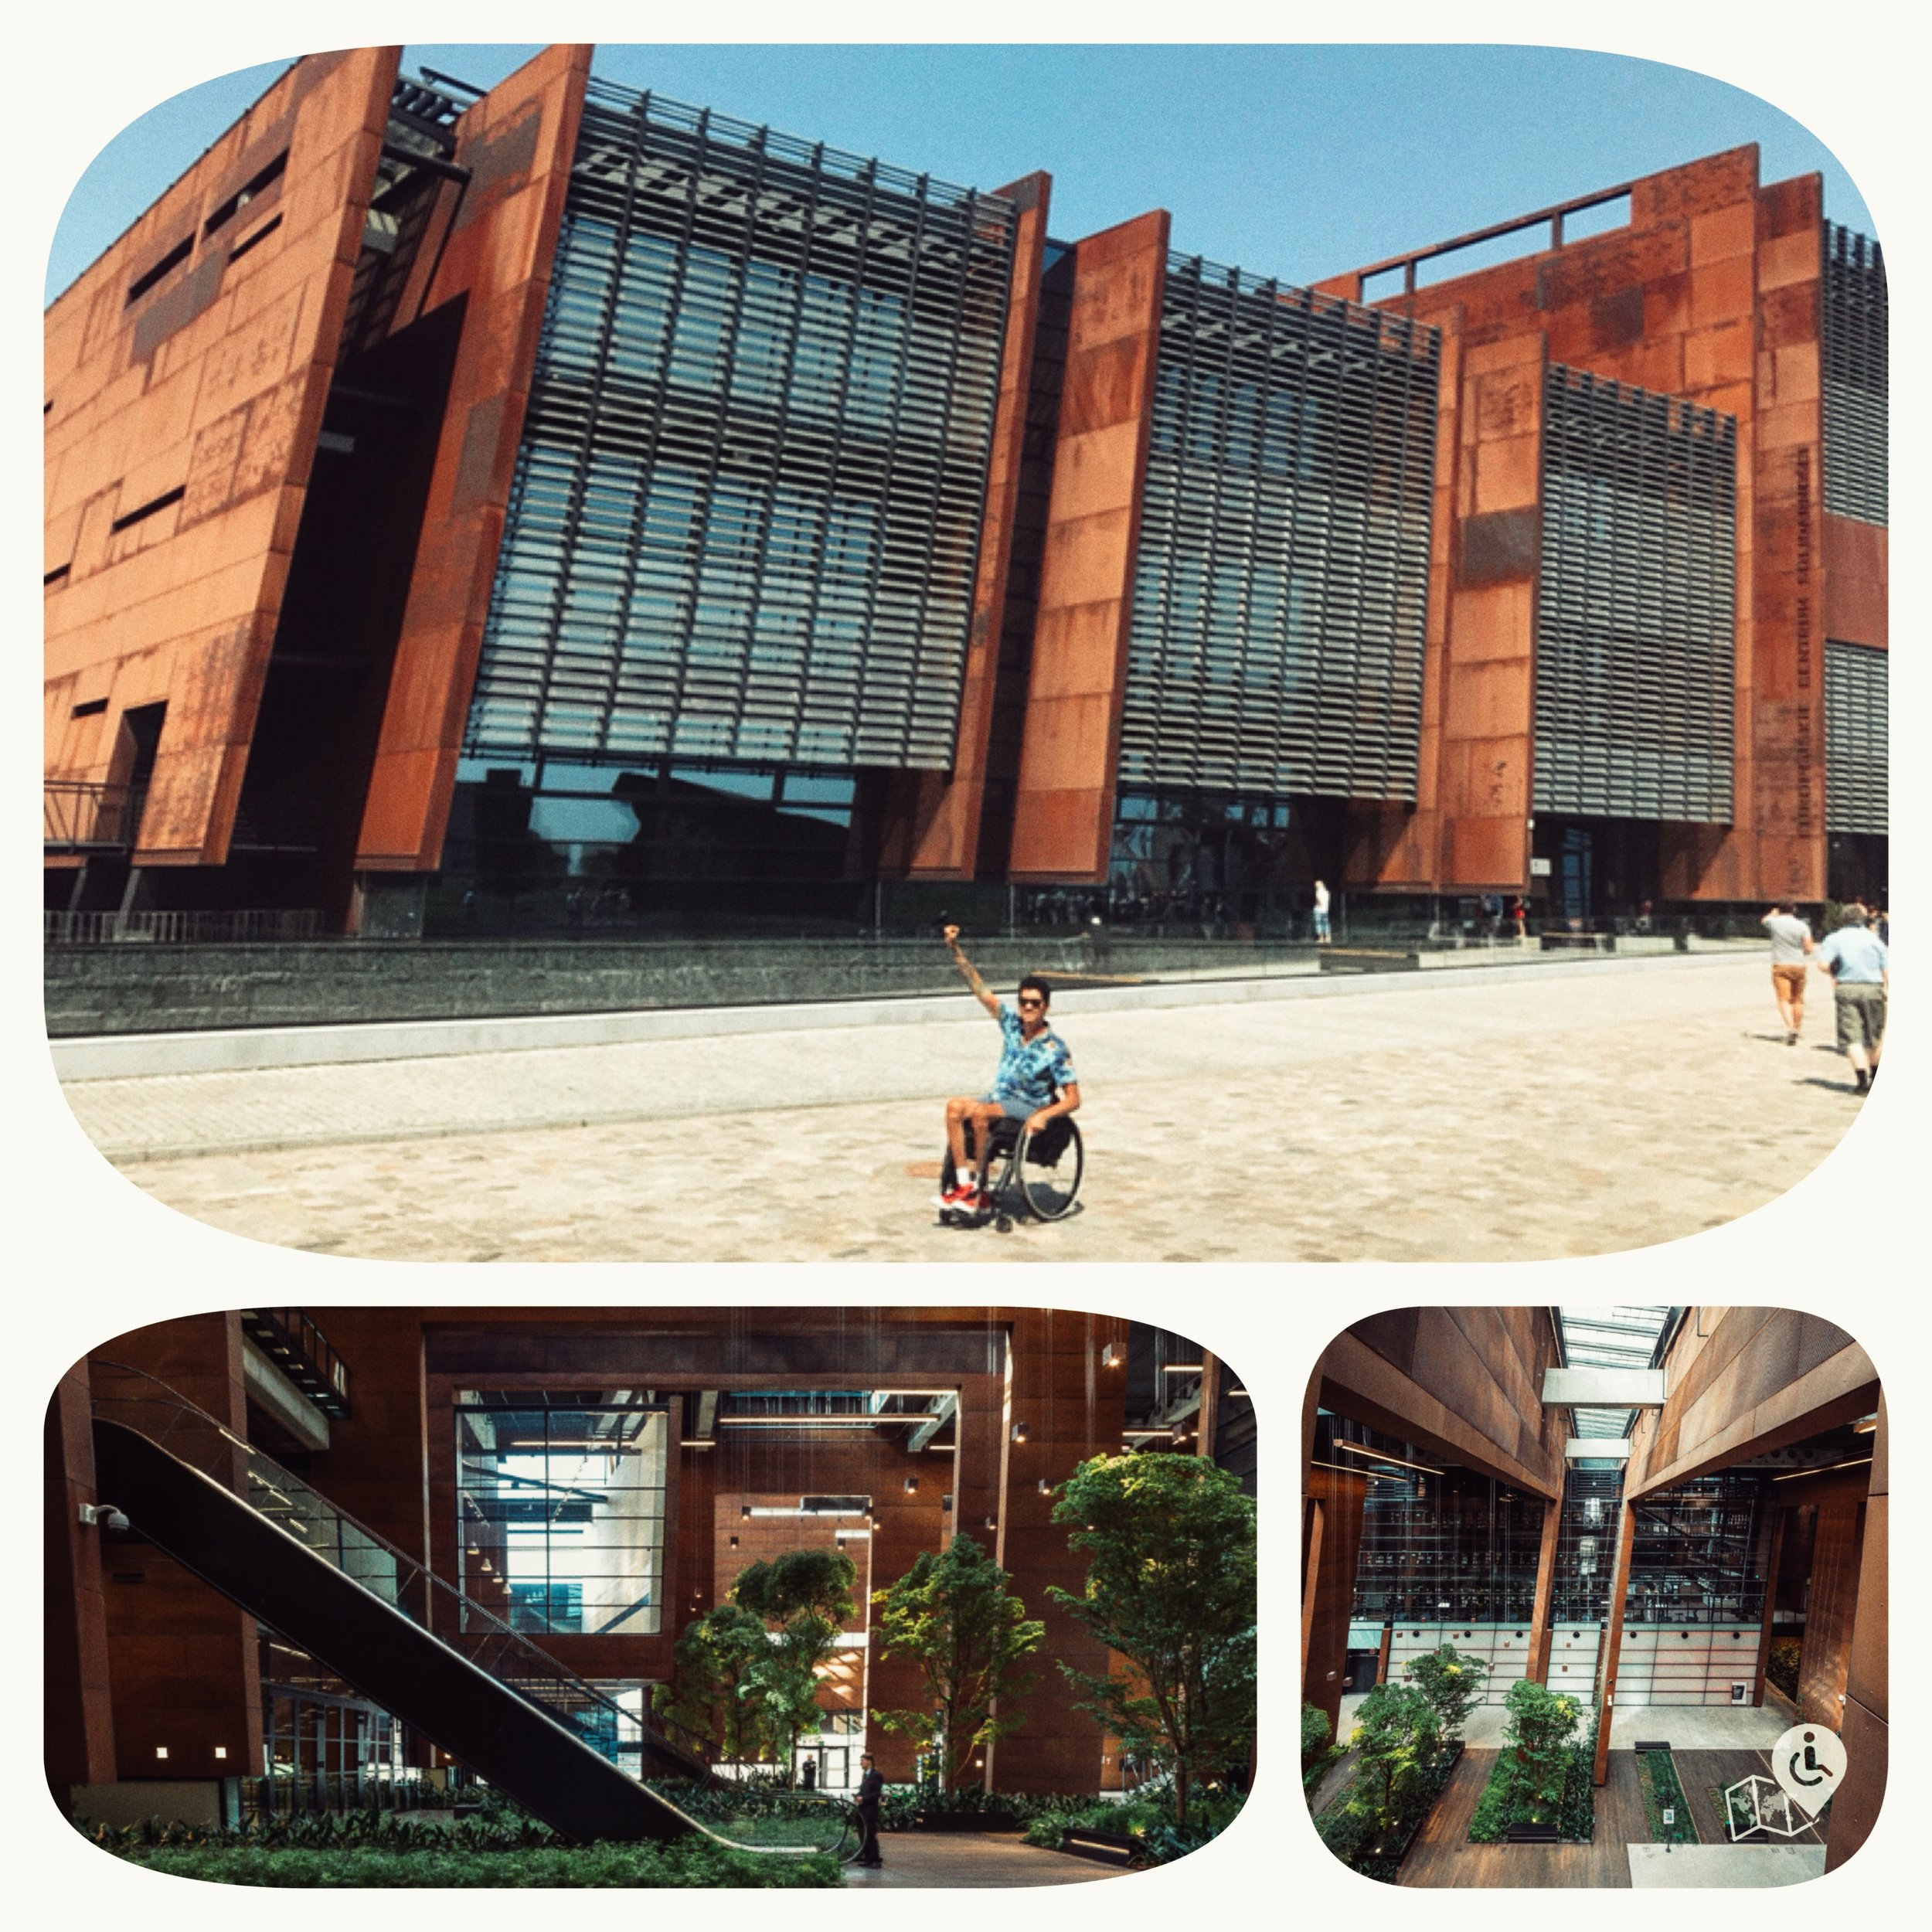 The eye-catching rusty colored building at the head of Gdansk Shipyard is the impressive European Solidarity Centre.